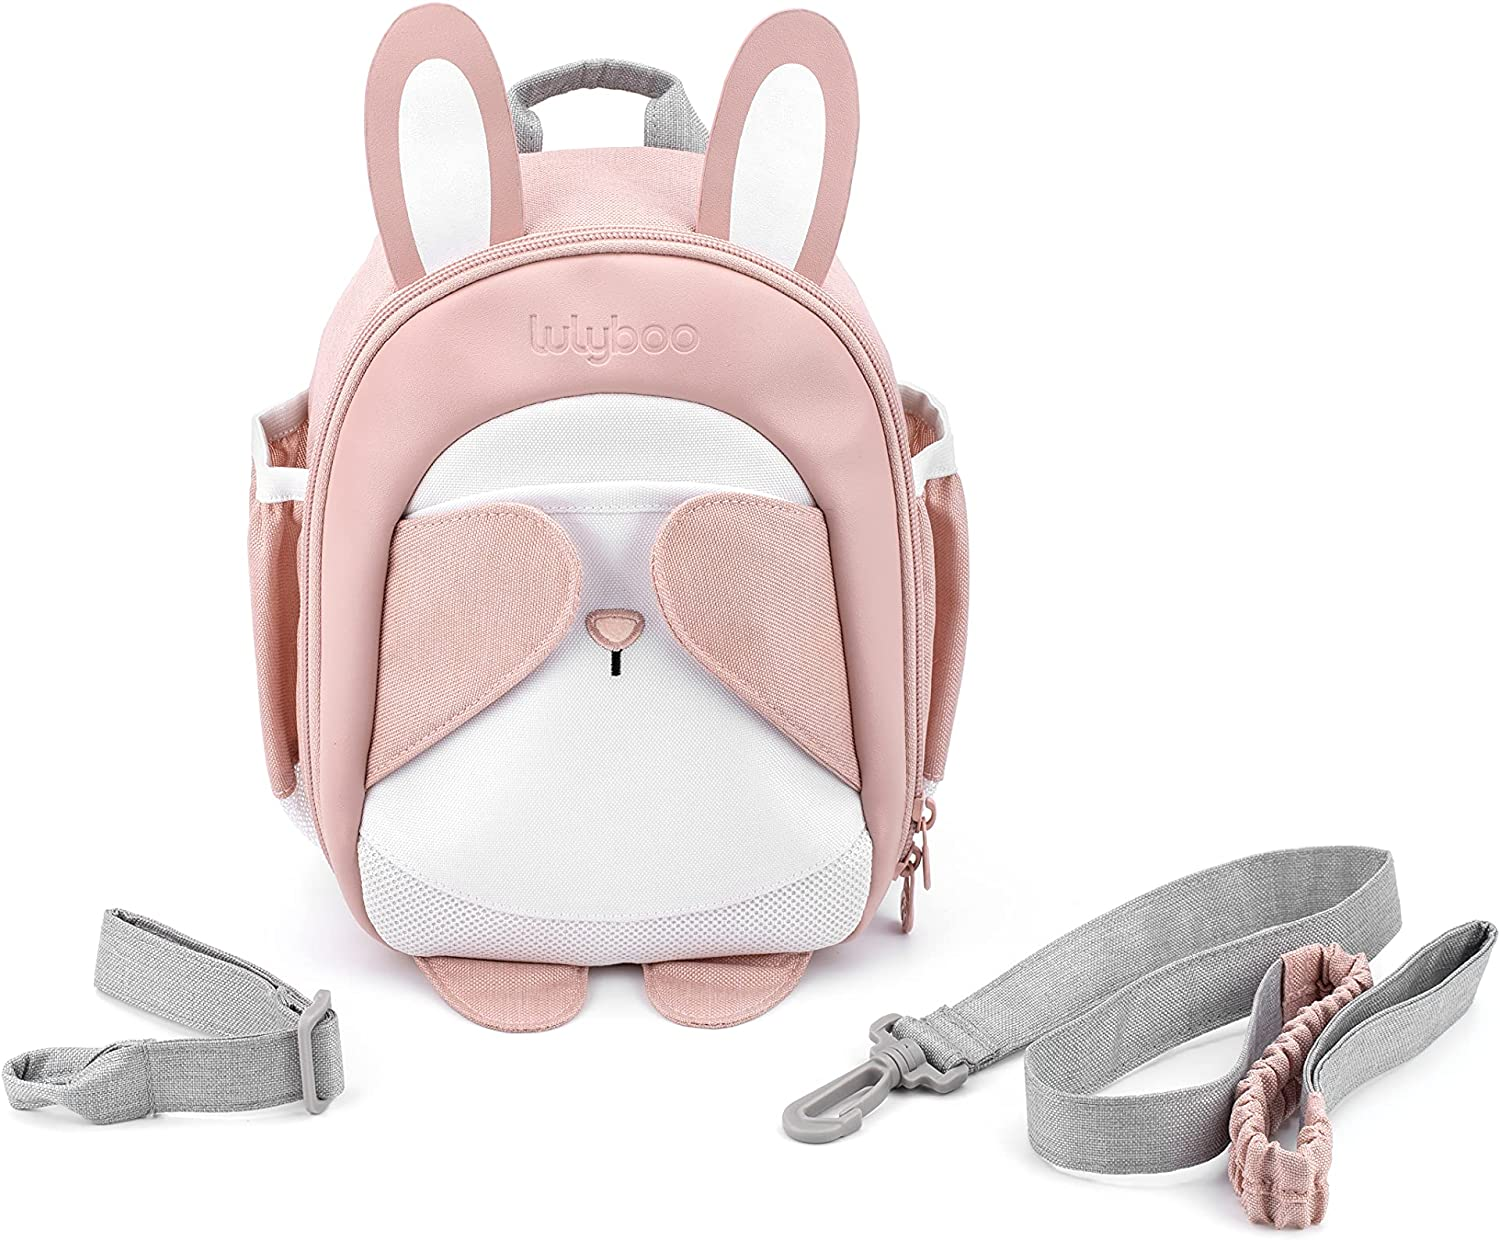 Lulyboo Toddler Backpack and Detachable Wrist Tether - 3-Point Harness, PARENT